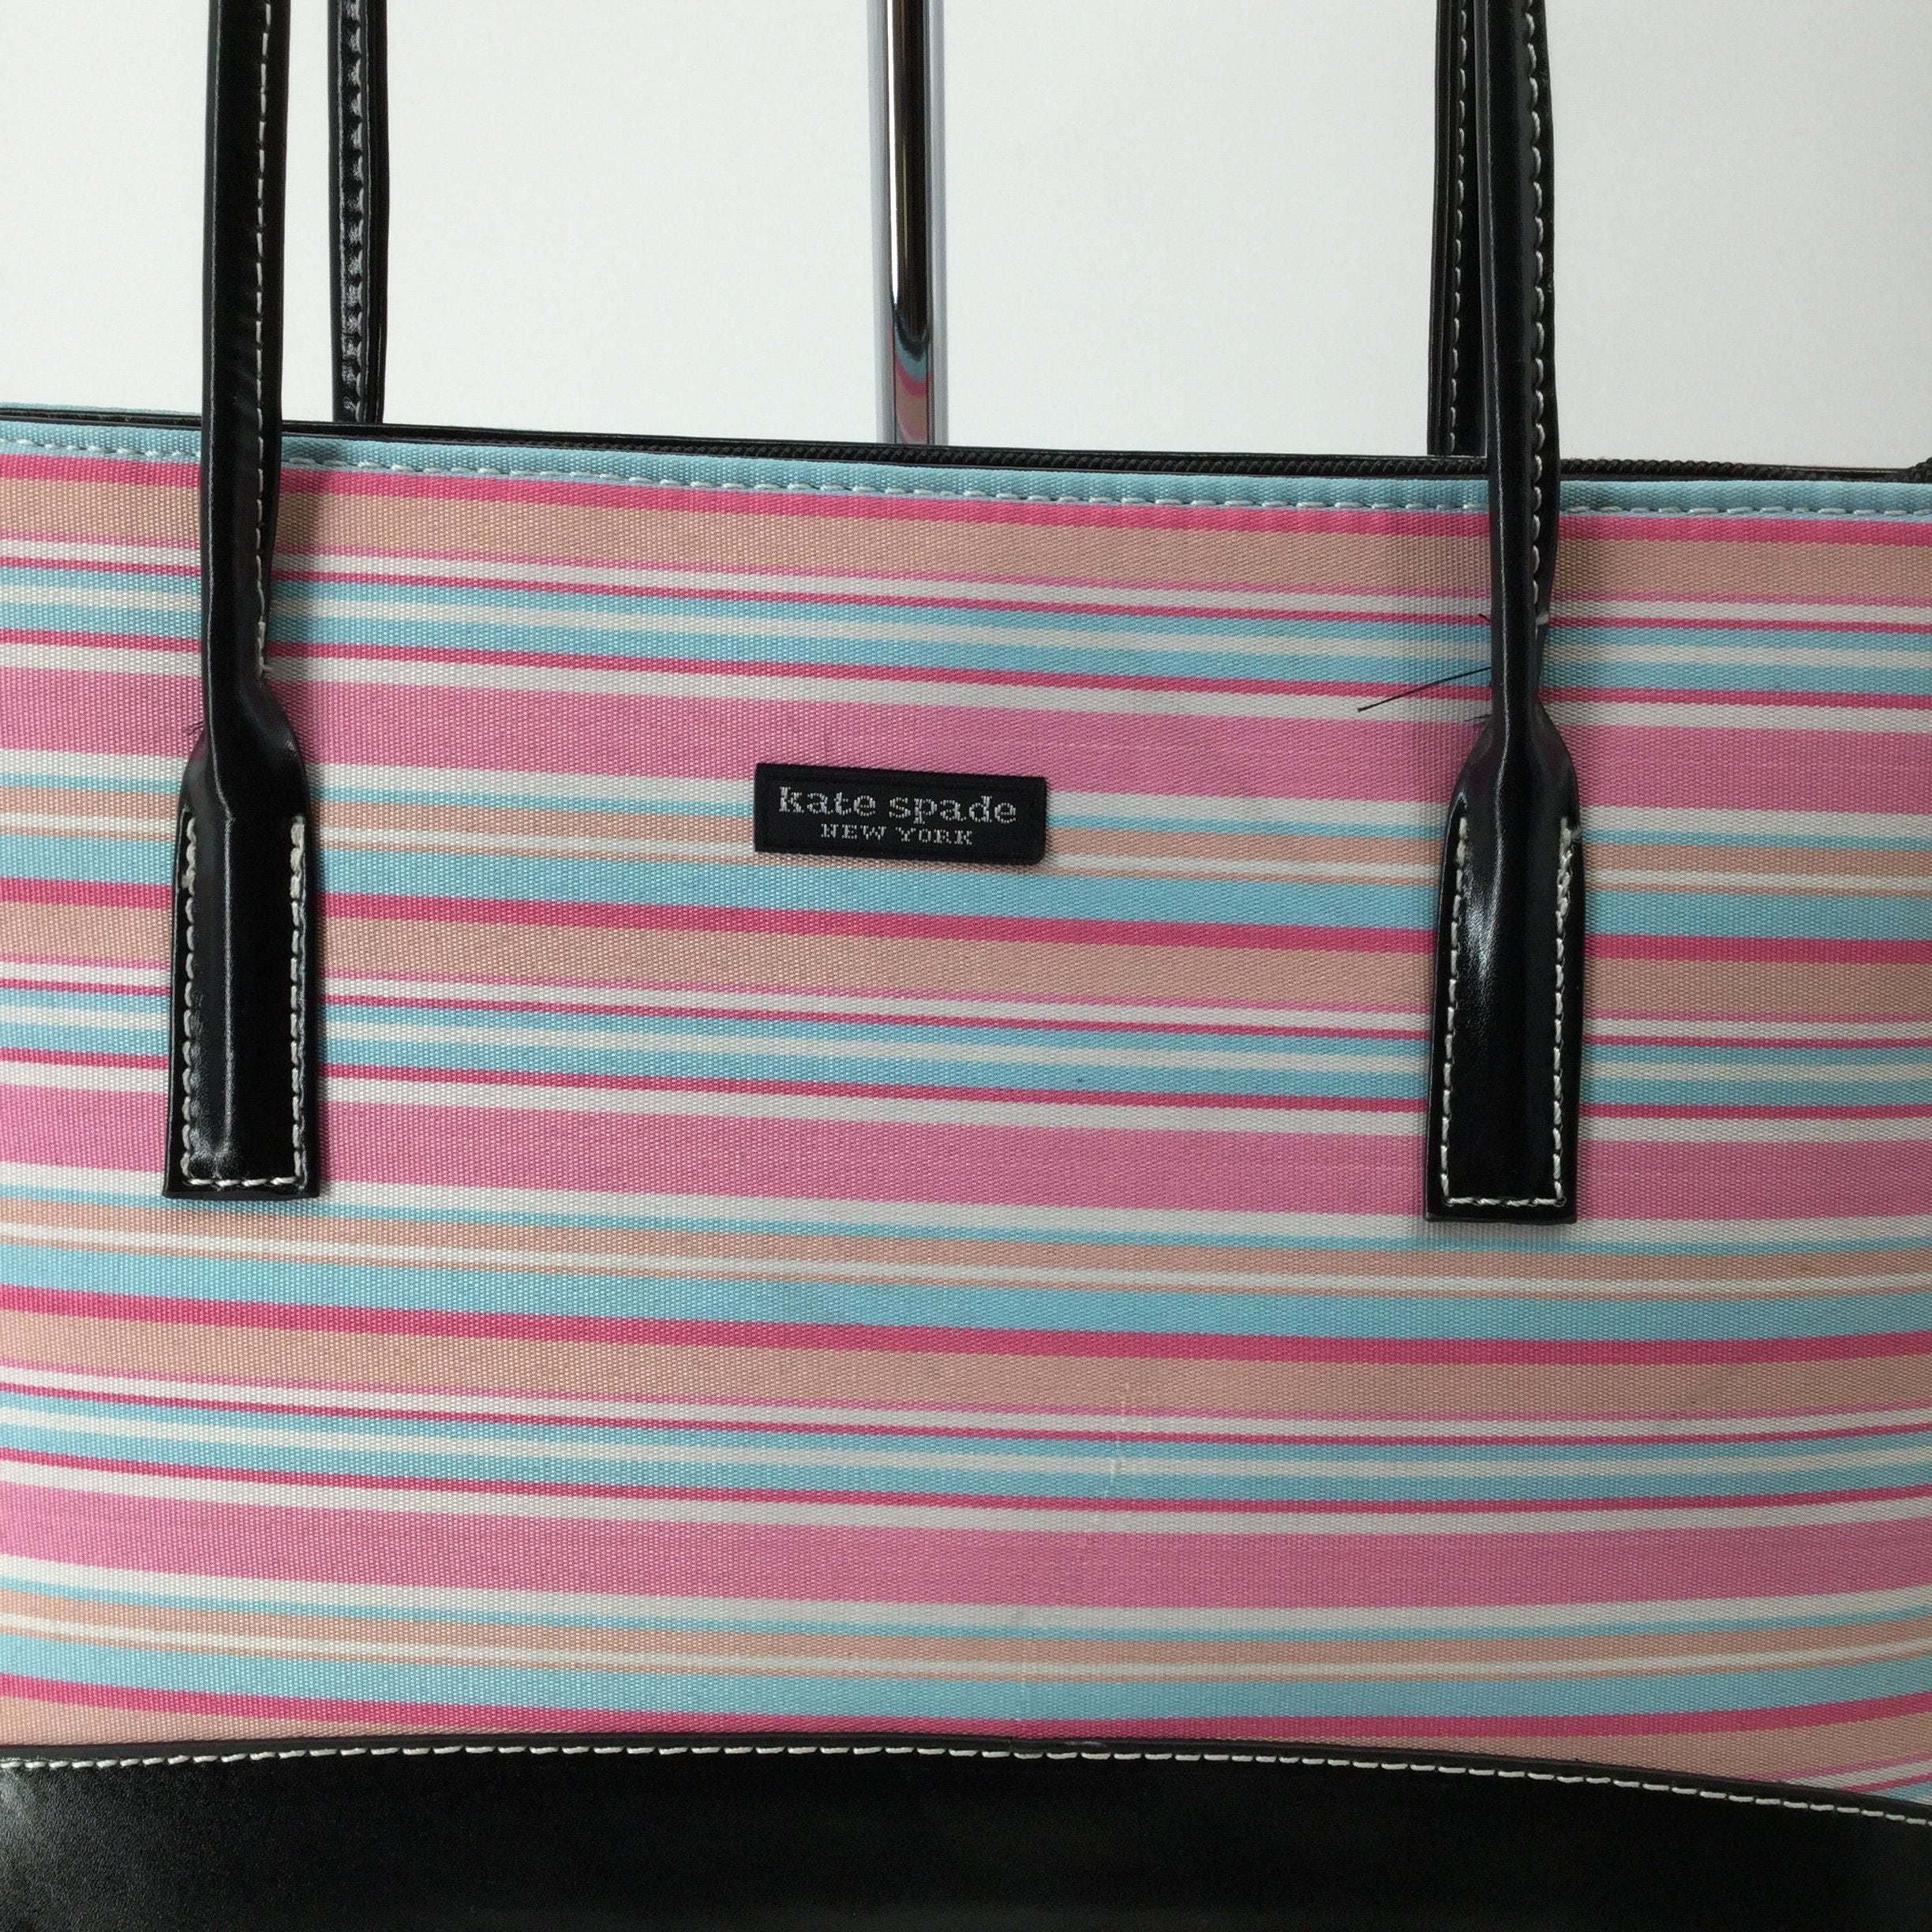 Kate Spade Designer Handbag, Pink, Blue, Orange, White, Size: Medium - <P>THIS COLORFUL KATE SPADE HANDBAG HAS A FABRIC BODY WITH A LEATHER BOTTOM AND LEATHER STRAPS. THERE ARE PLENTY OF POUCHES AND ZIPPERED POCKETS INSIDE FOR STORAGE. IT HAS SOME MINOR WEAR ON THE EXTERIOR FABRIC (SEE PHOTOS).</P>